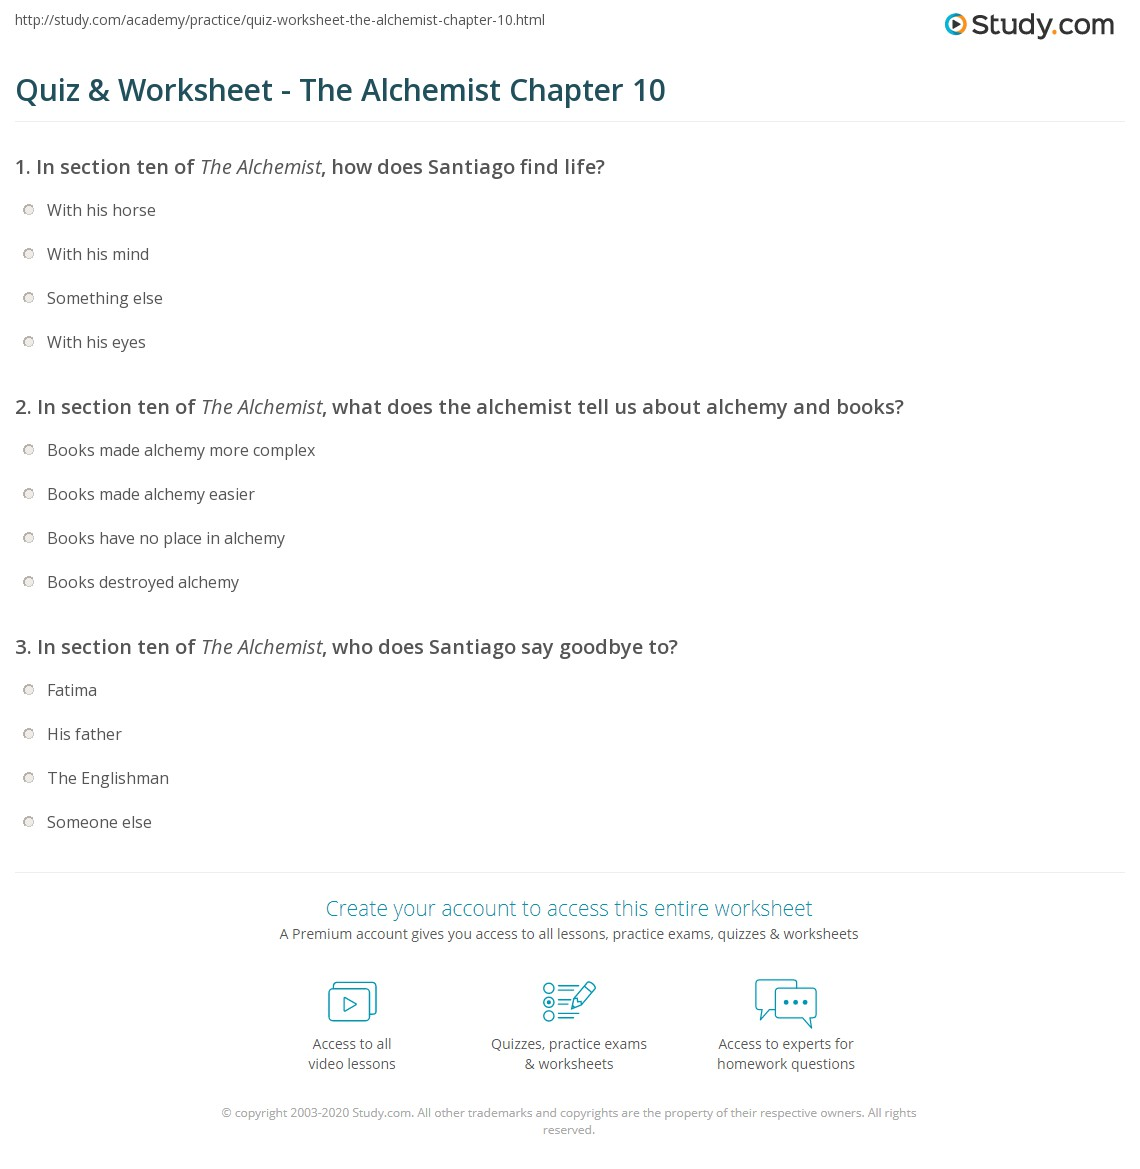 quiz worksheet the alchemist chapter 10 com print the alchemist chapter 10 summary worksheet